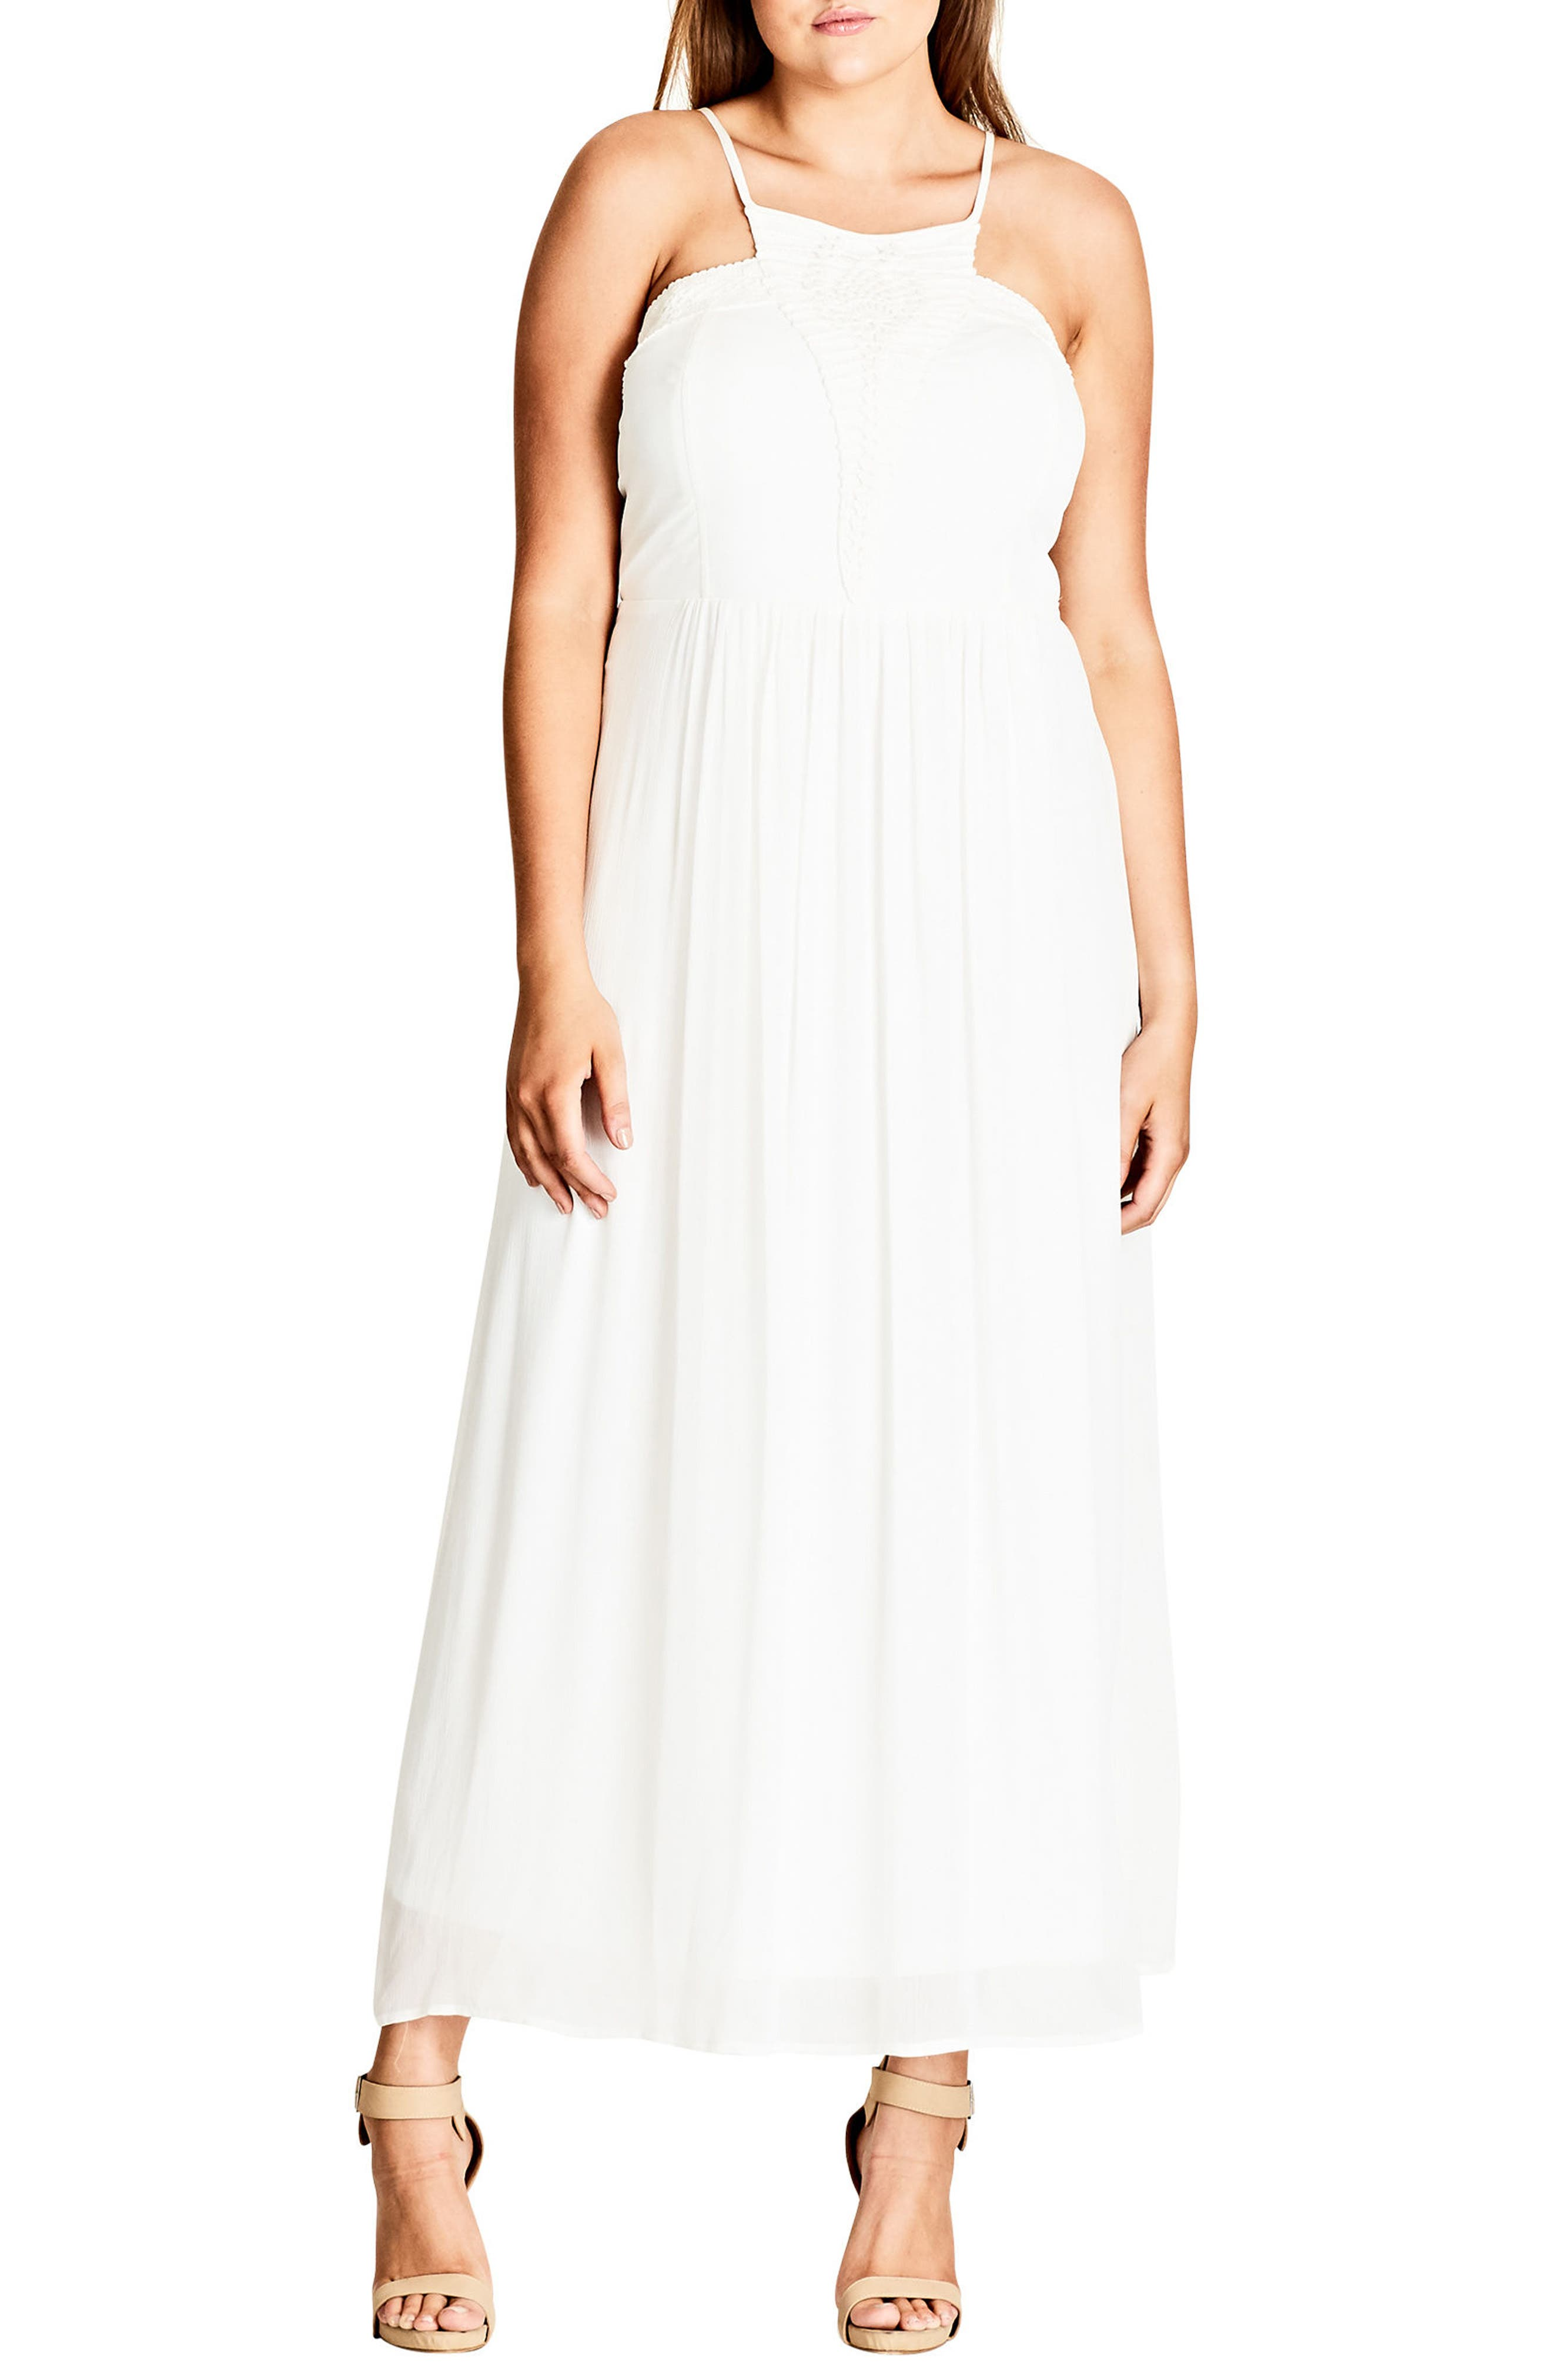 City Chic Purity Halter Style Maxi Dress (Plus Size)